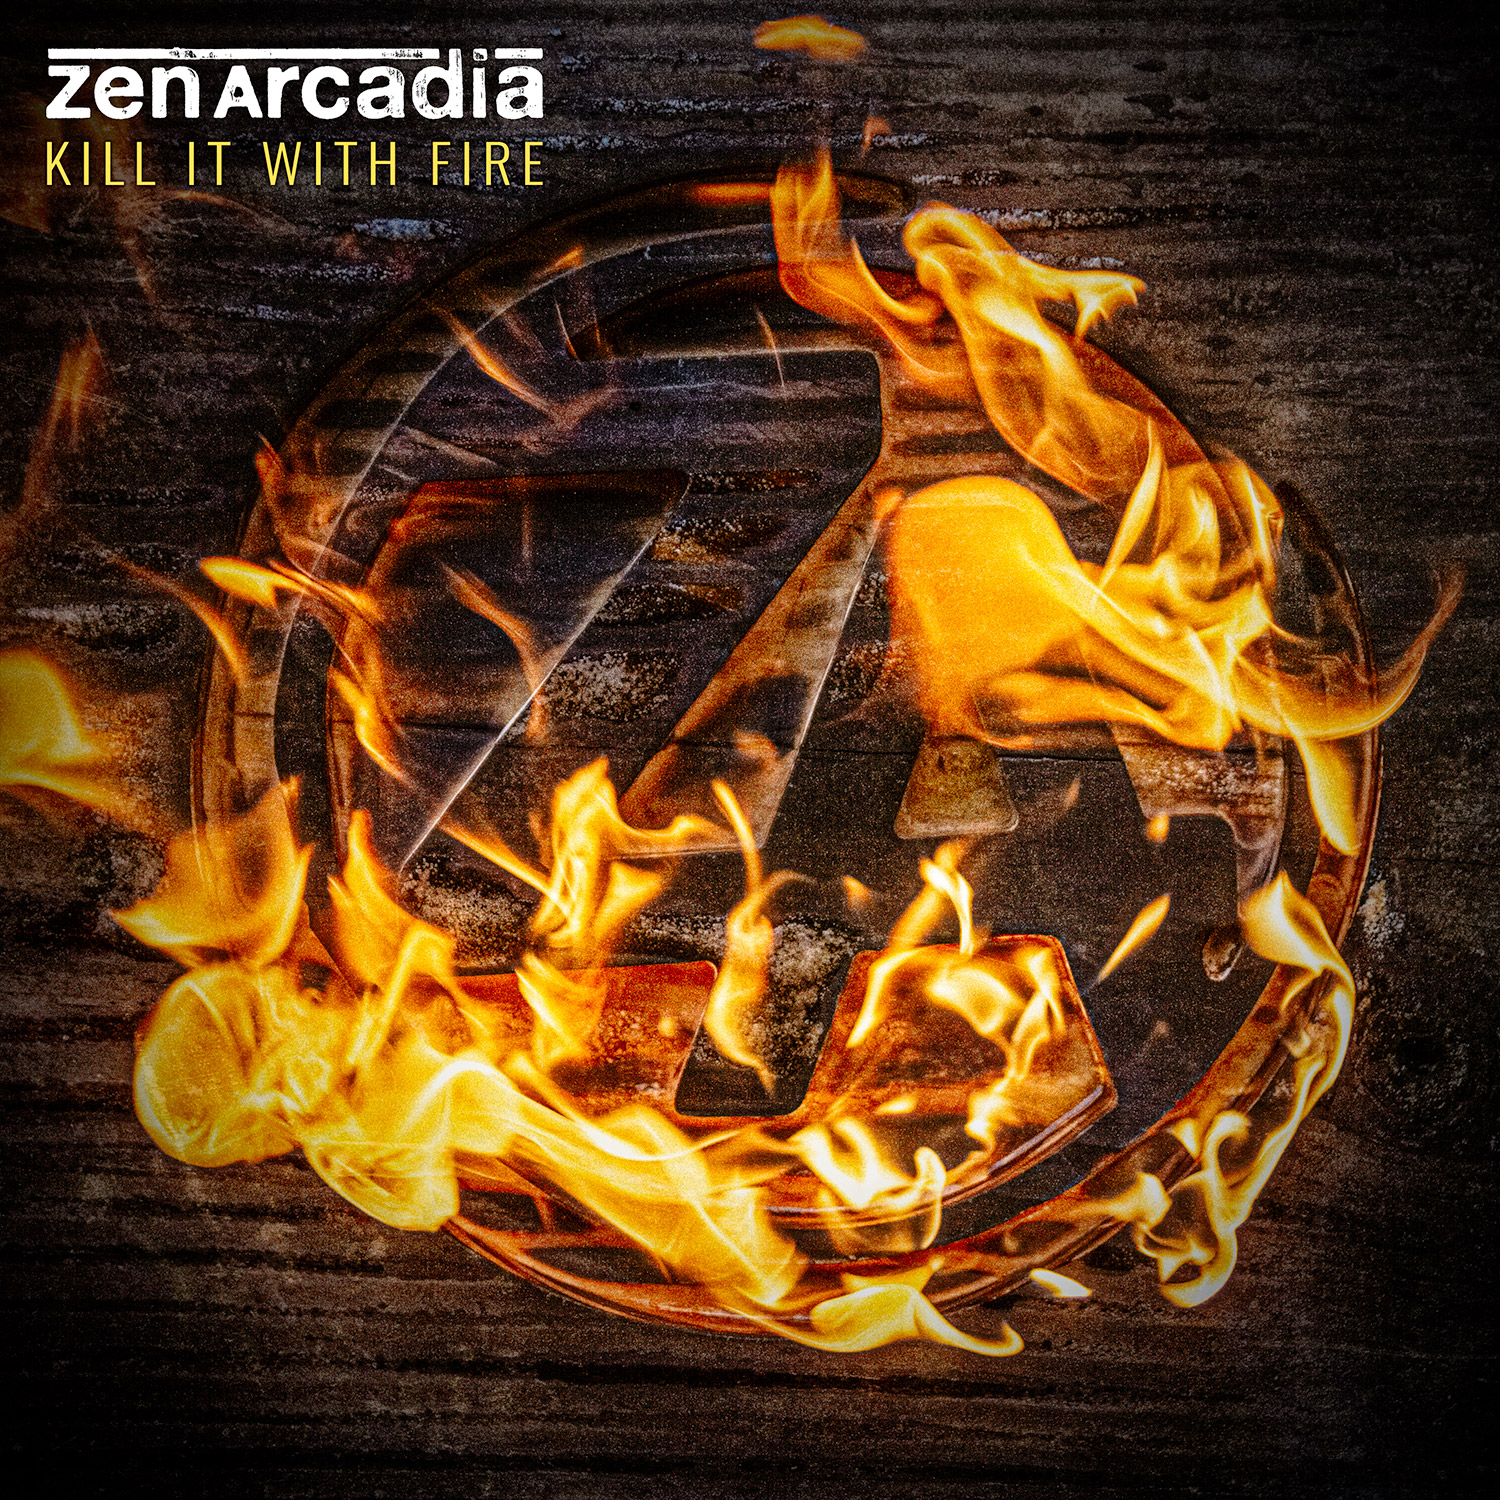 Zen Arcadia Earthquakes